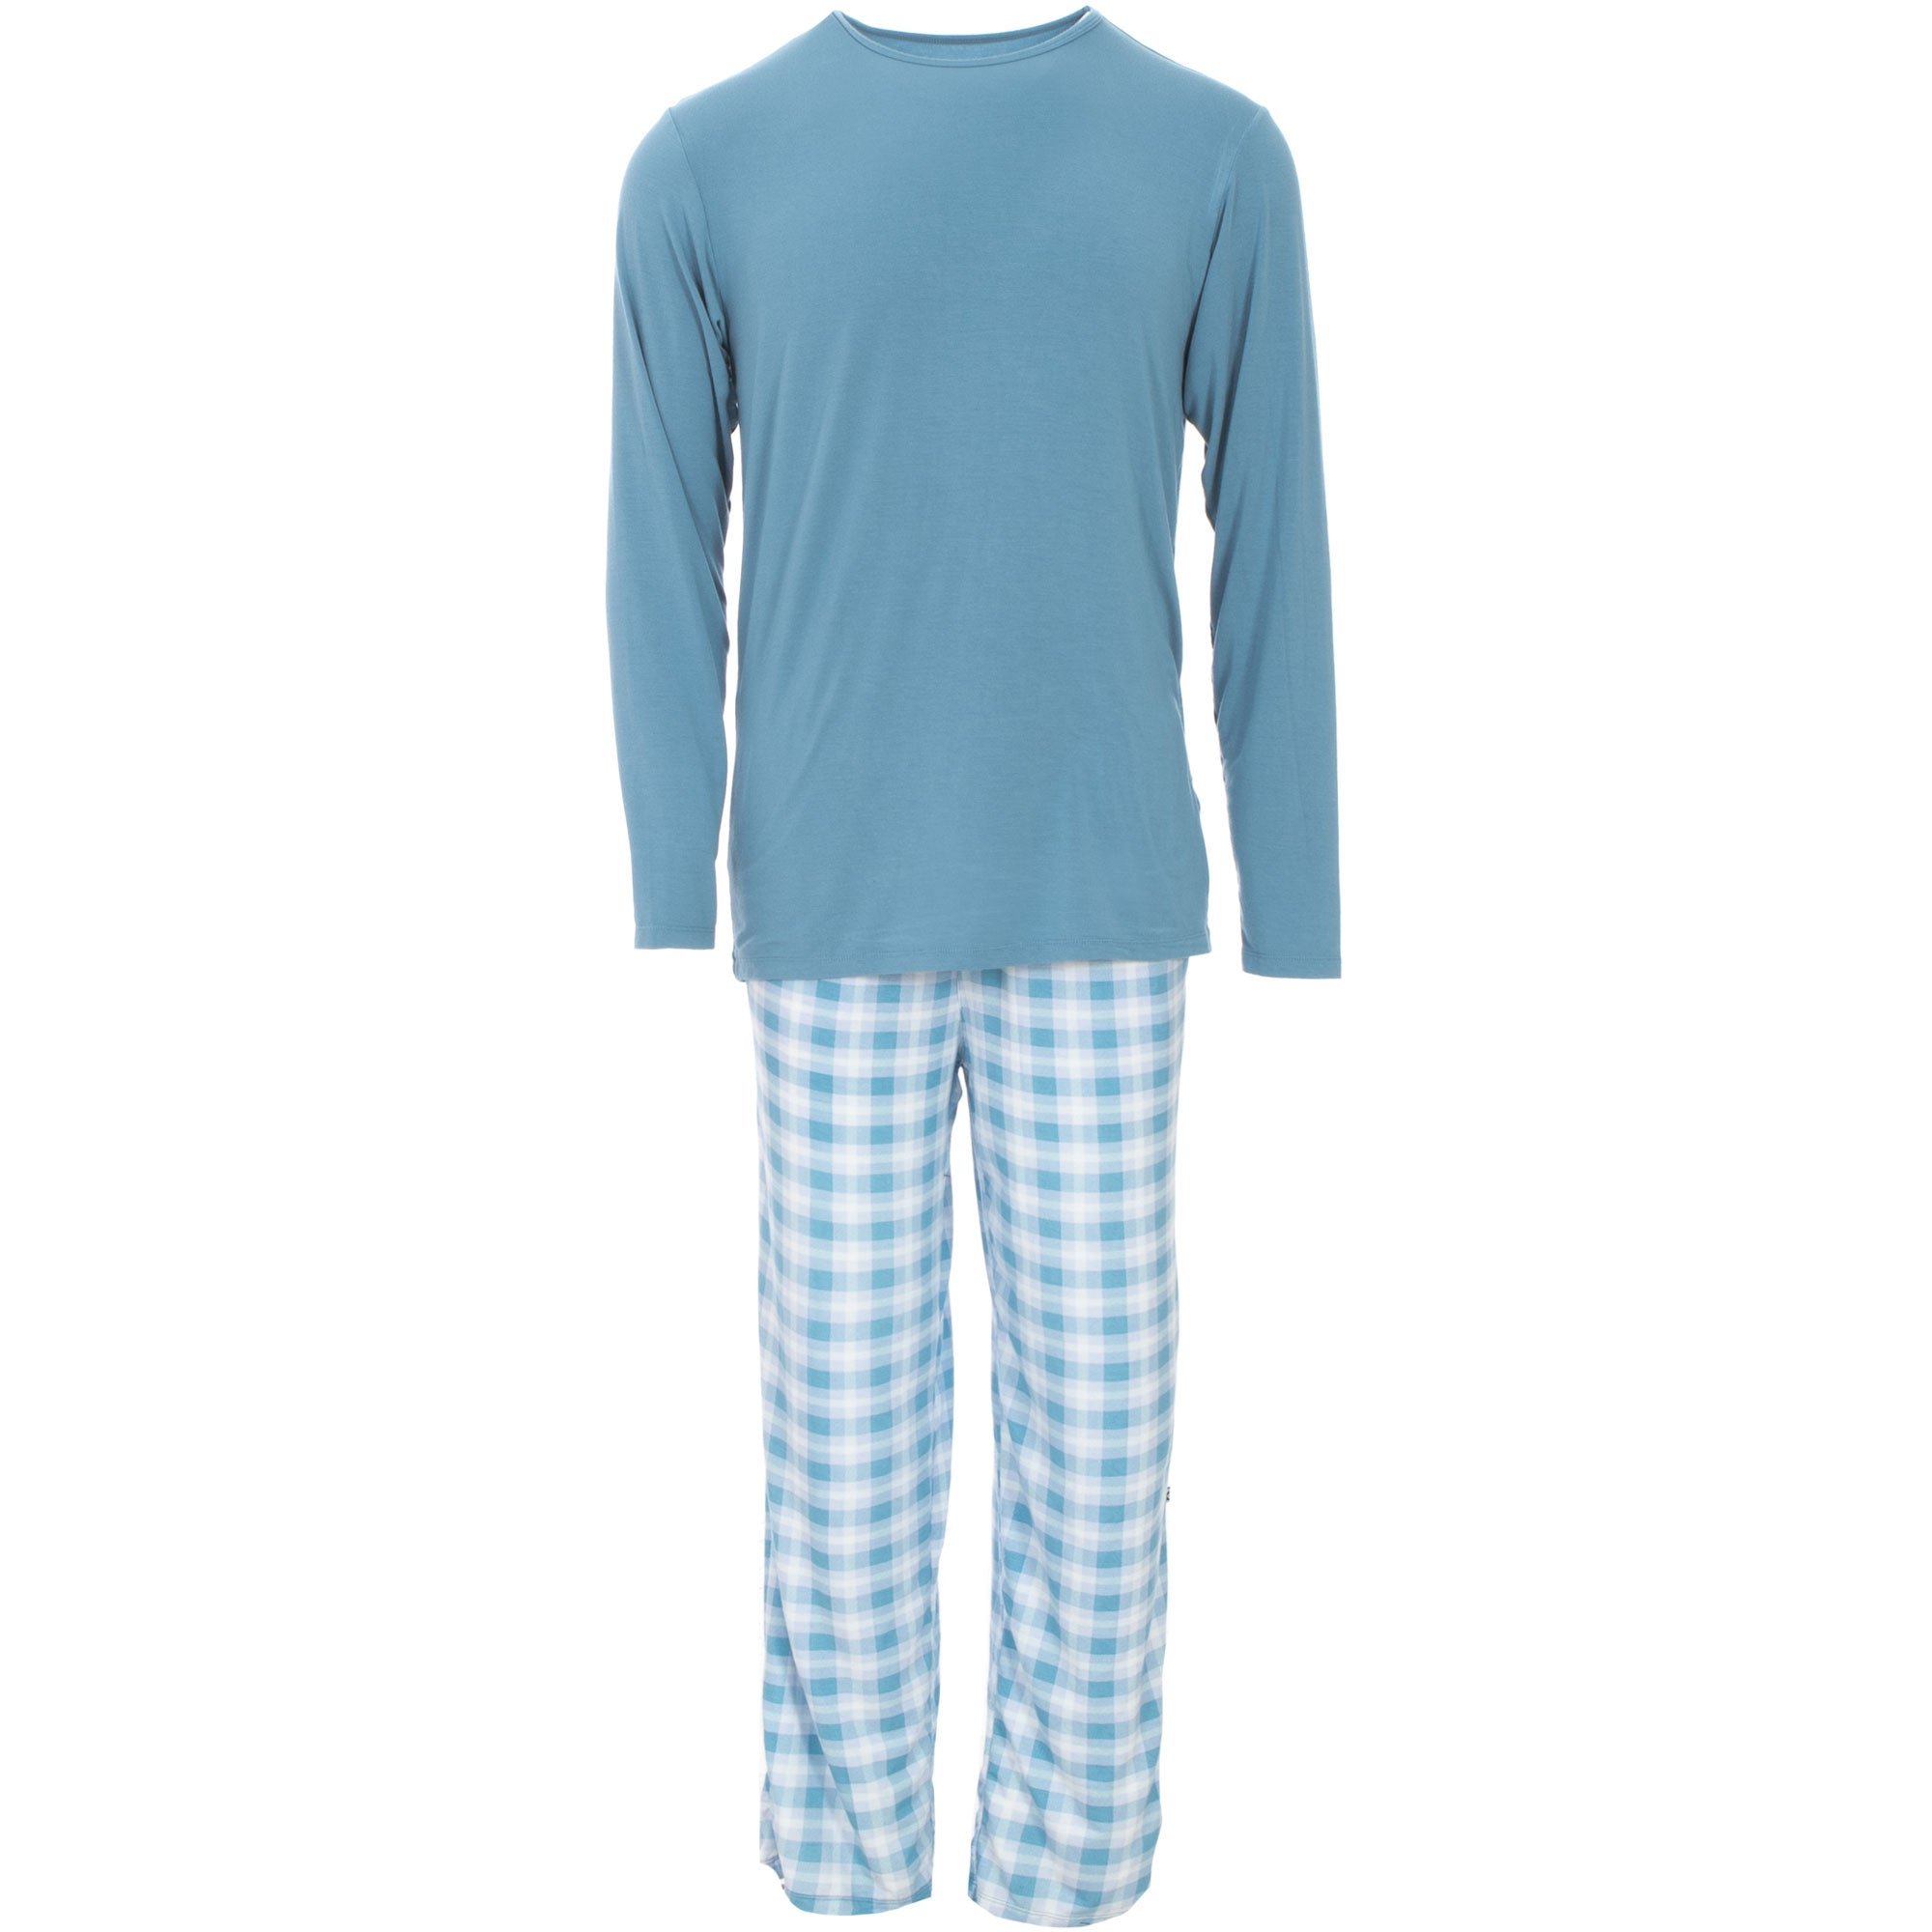 KicKee Pants Mens Pajama Set - Holiday Plaid